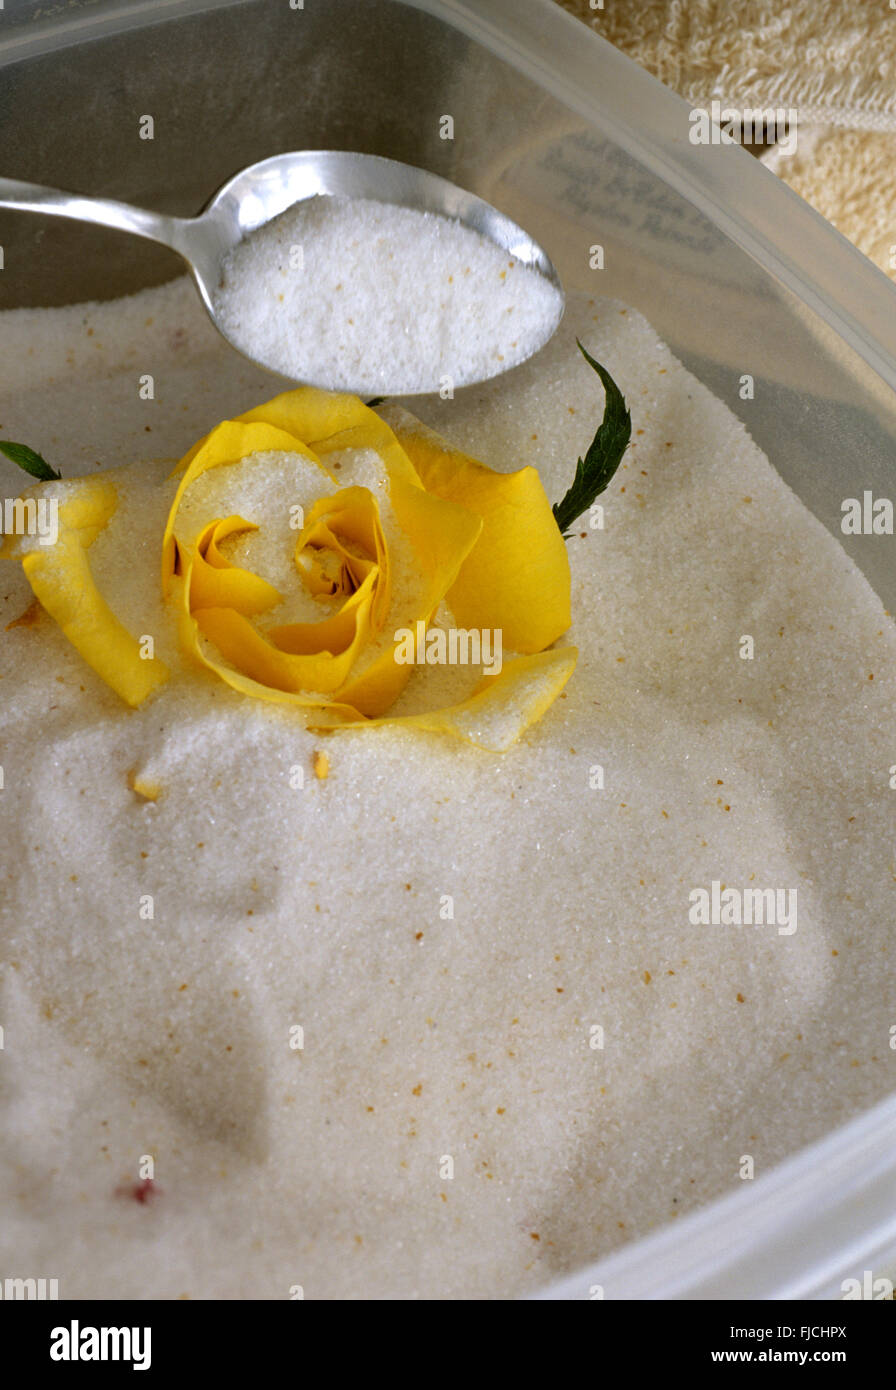 Drying a rose with silica gel, gently pouring gel on rose in sealable container - Stock Image